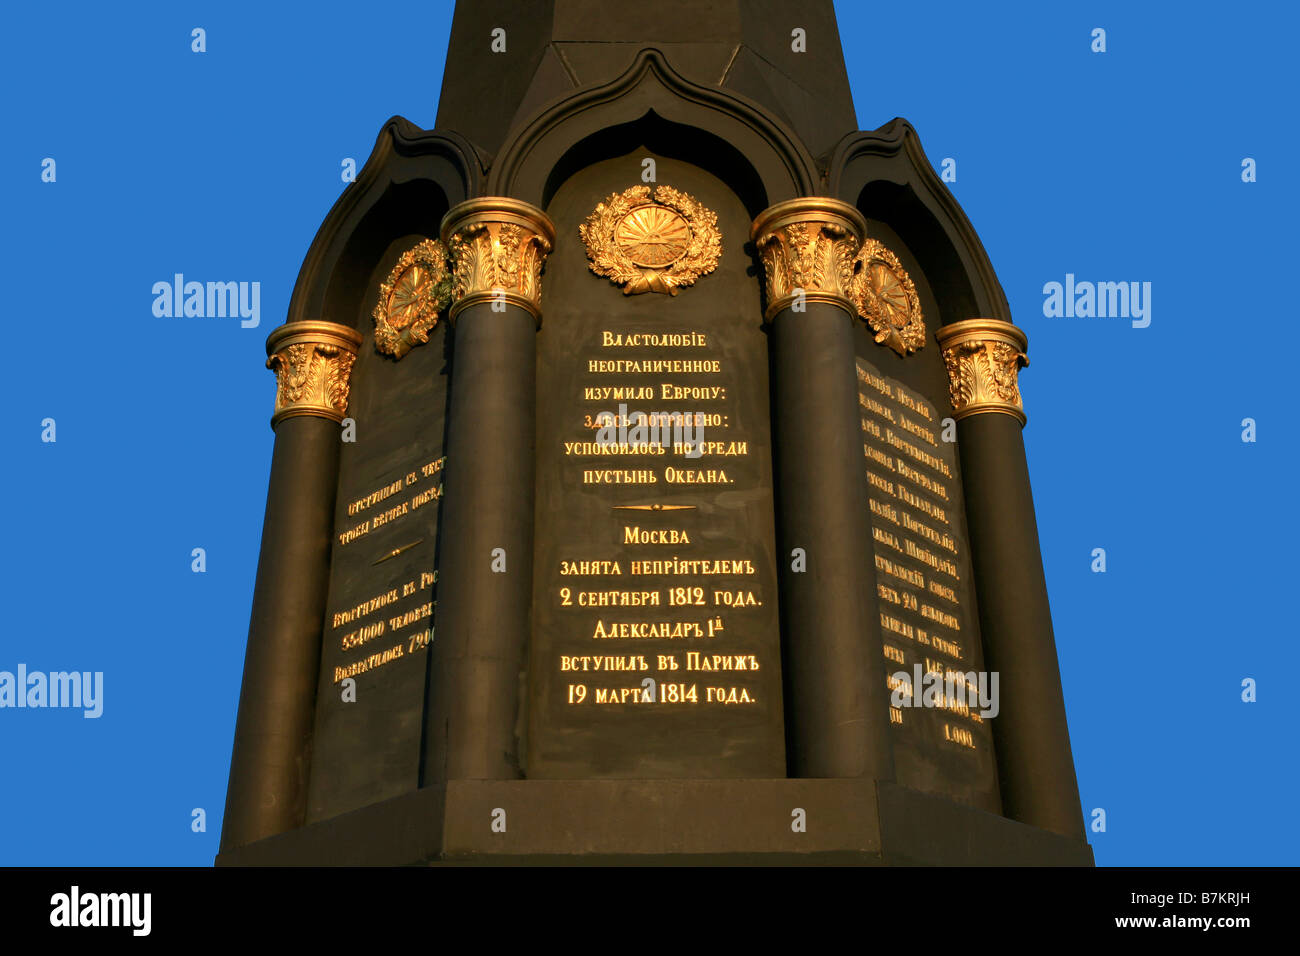 Close-up of the list with the number of casualties at the Battle of Borodino (1812) on the Raevsky Monument in Borodino, - Stock Image